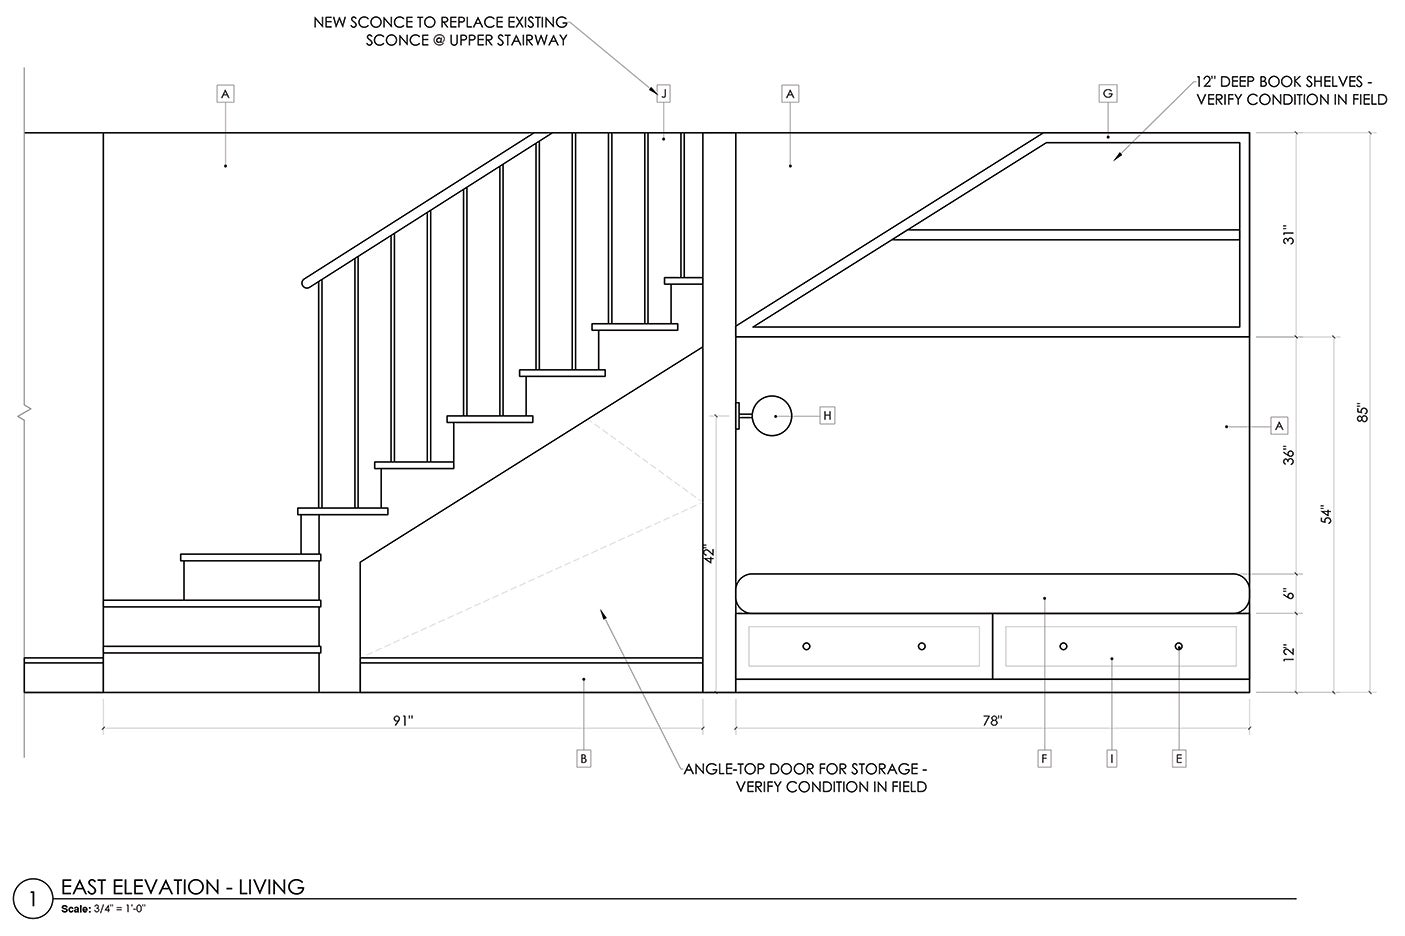 blueprint of stairs